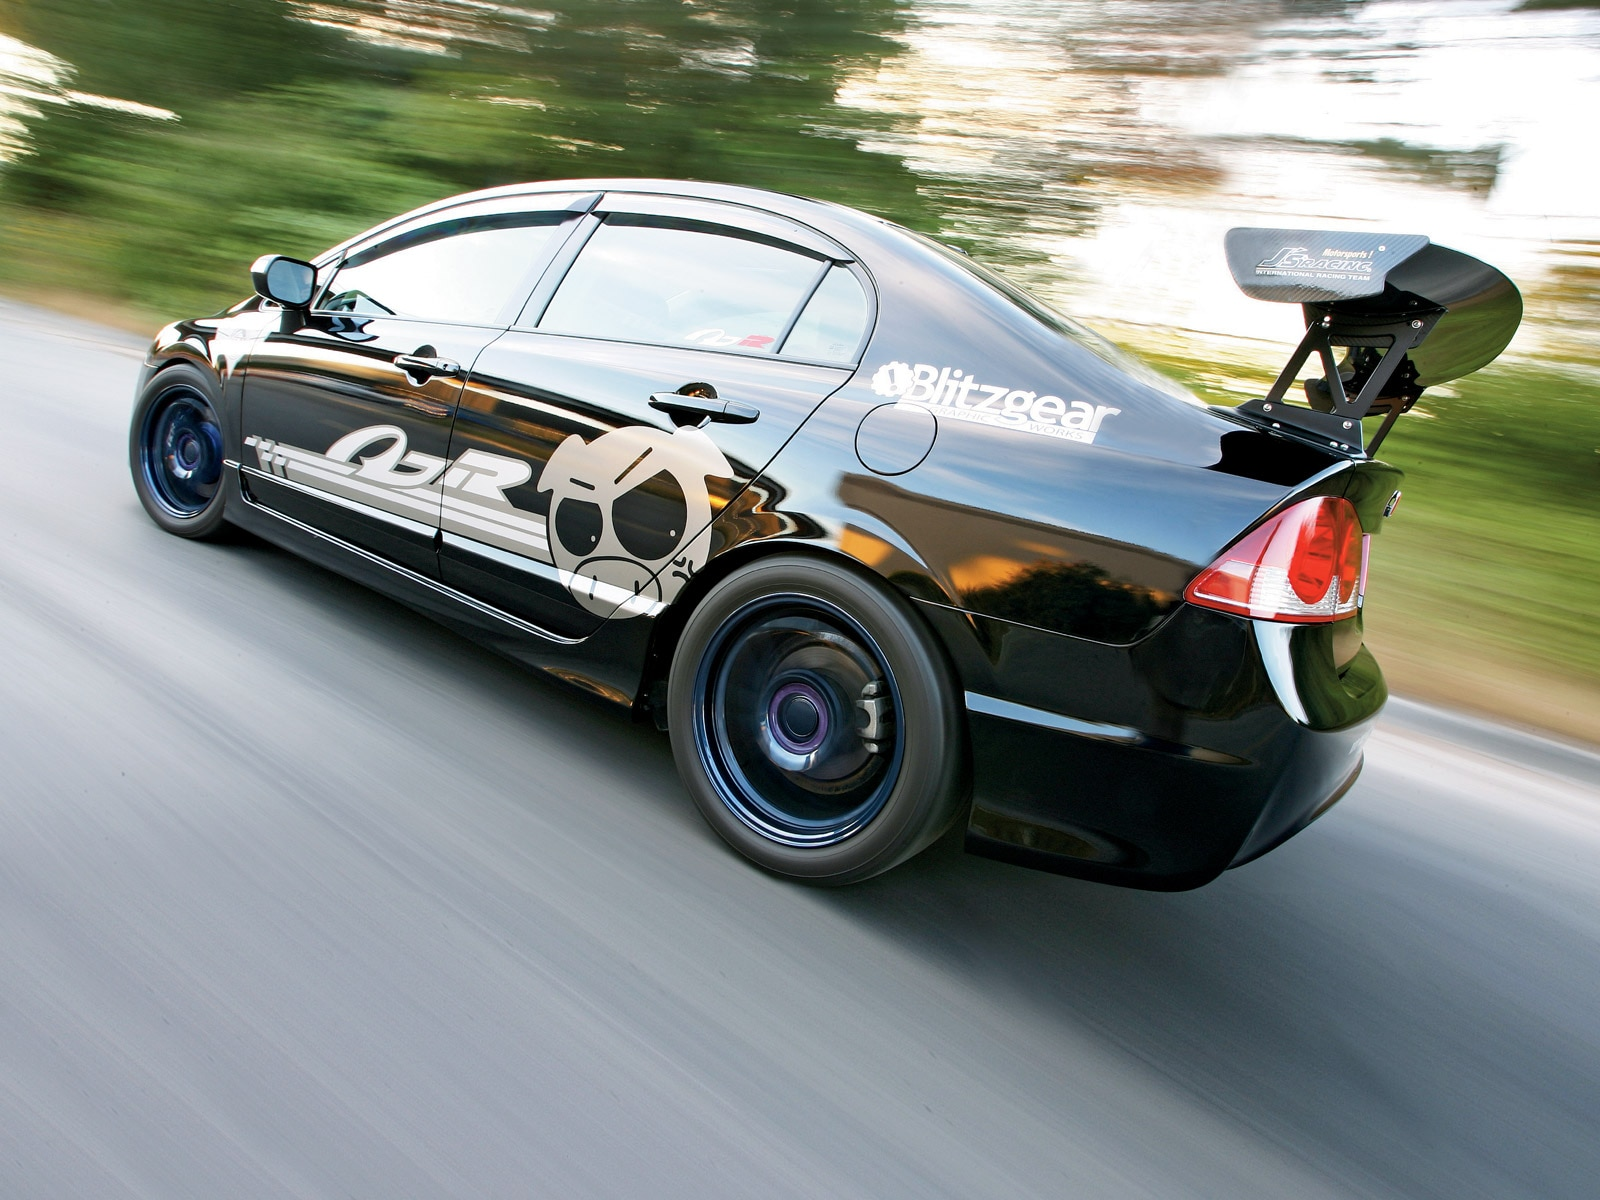 medium resolution of 2008 acura csx type s the family car alternative compromise